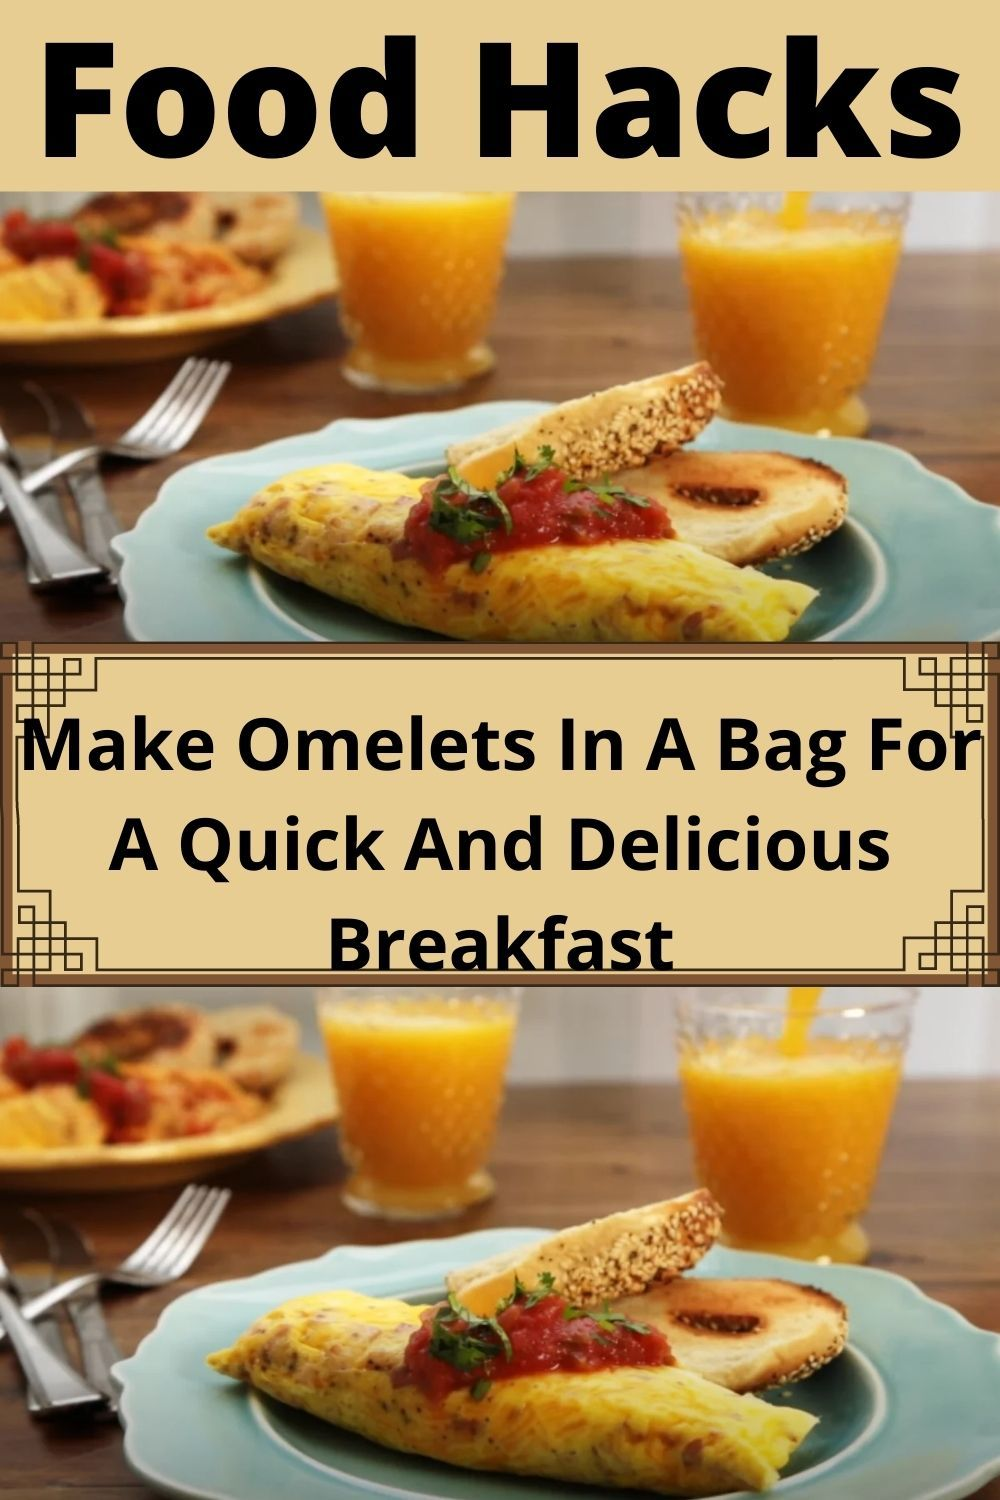 Make Omelets In A Bag For A Quick And Delicious Breakfast Food Hacks Life Hacks Food Food